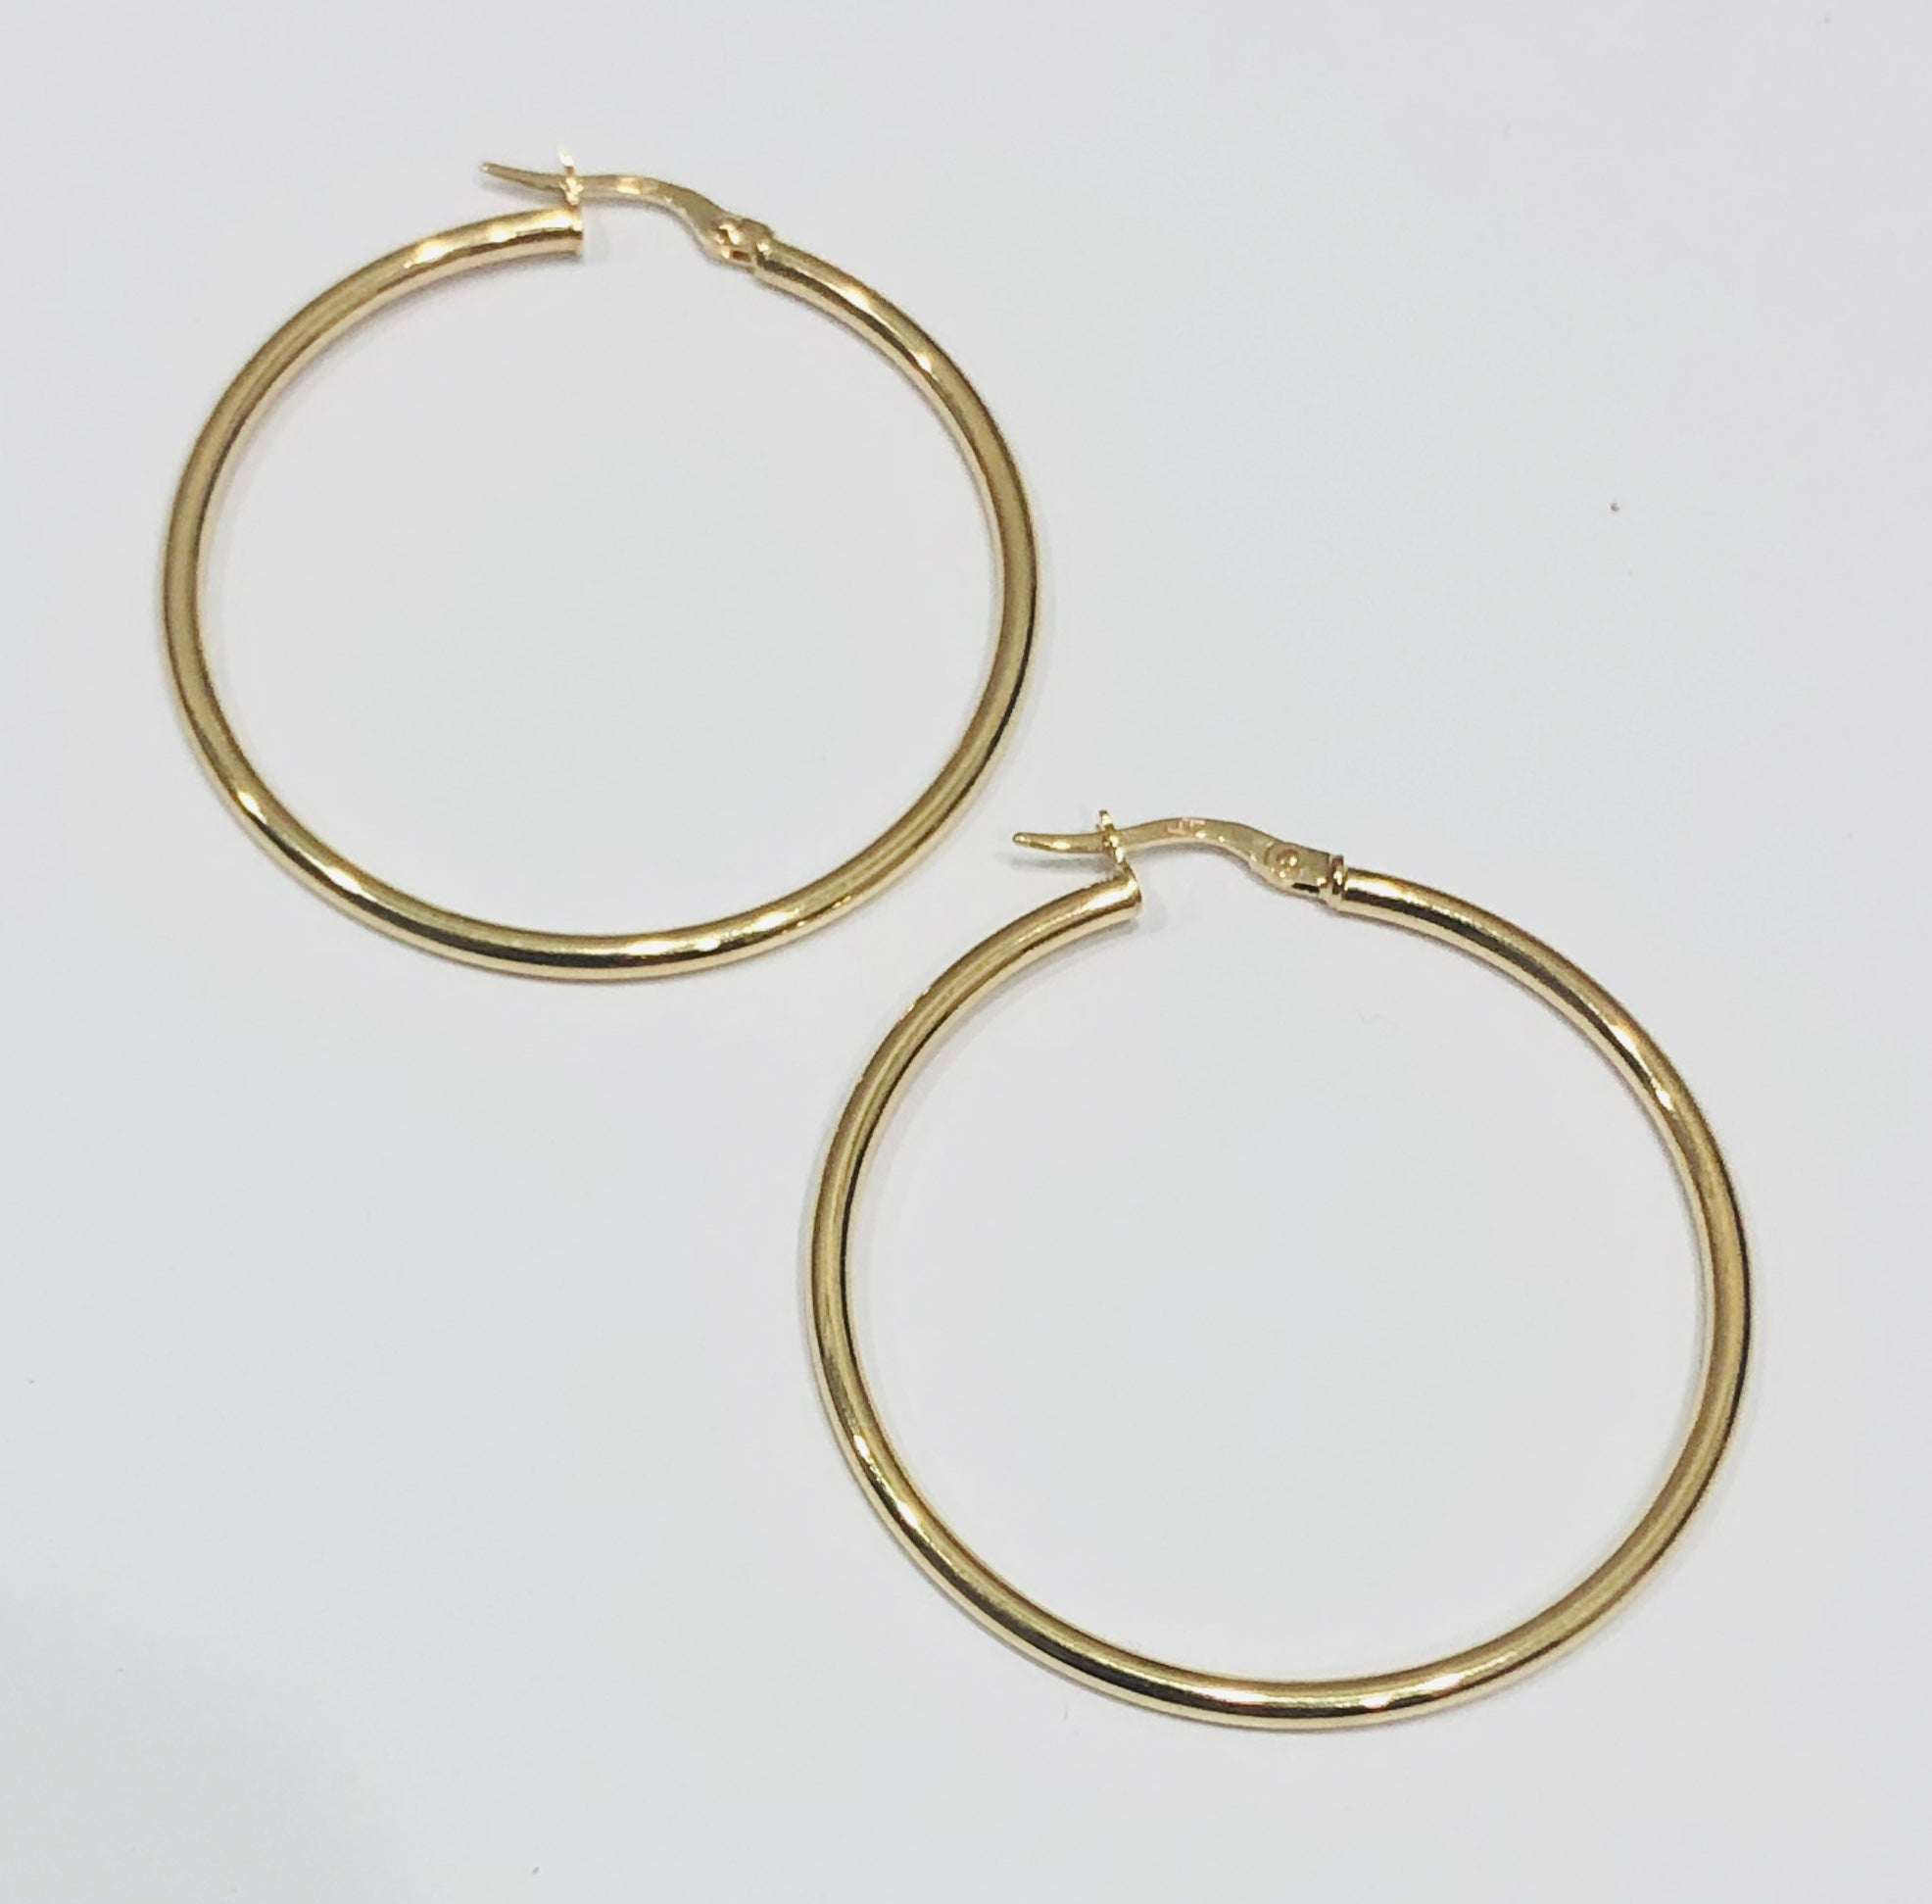 9ct Gold Hoop Earrings 35mm x 2mm - 015